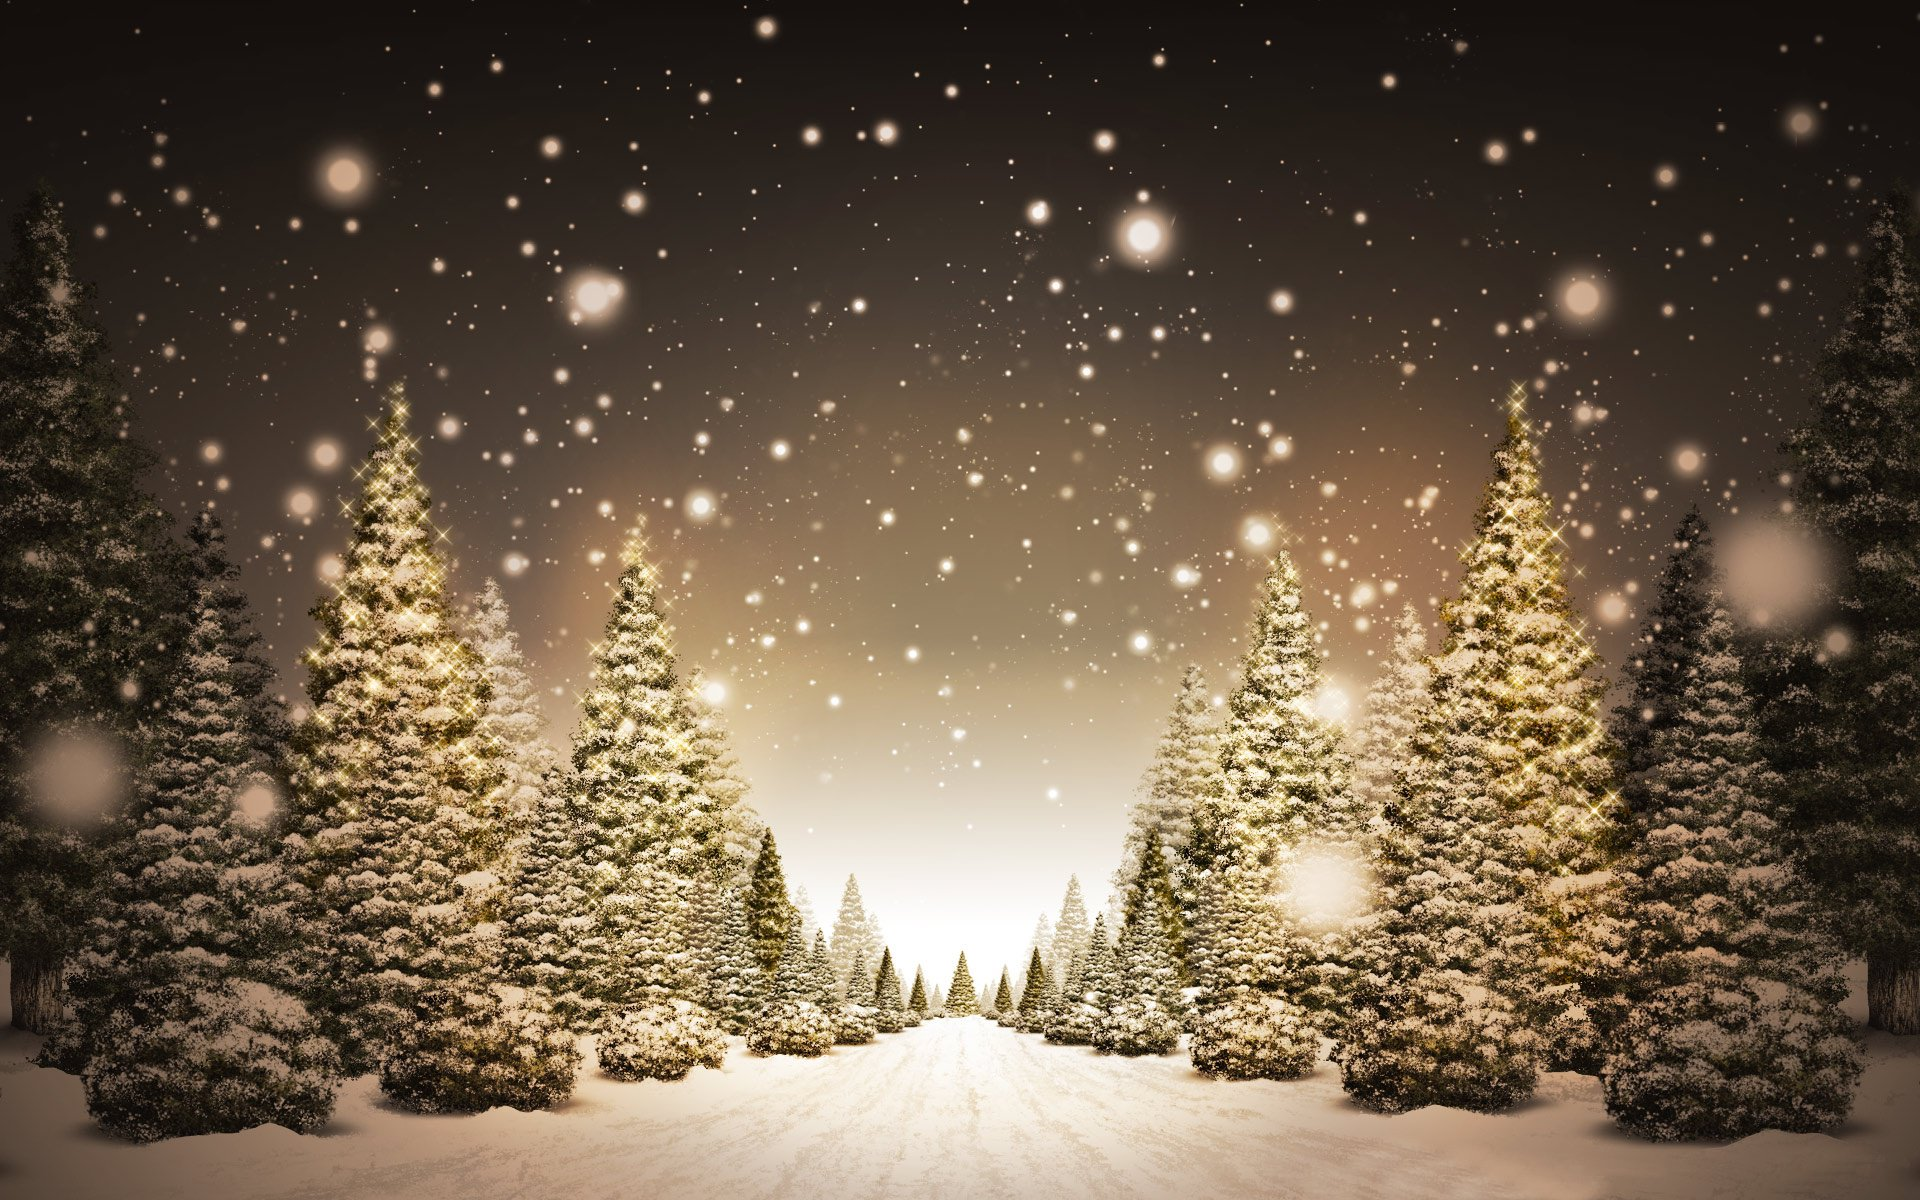 Falling Snow Wallpaper Widescreen Christmas Countdown On Twitter Quot It S 8 Weeks Until